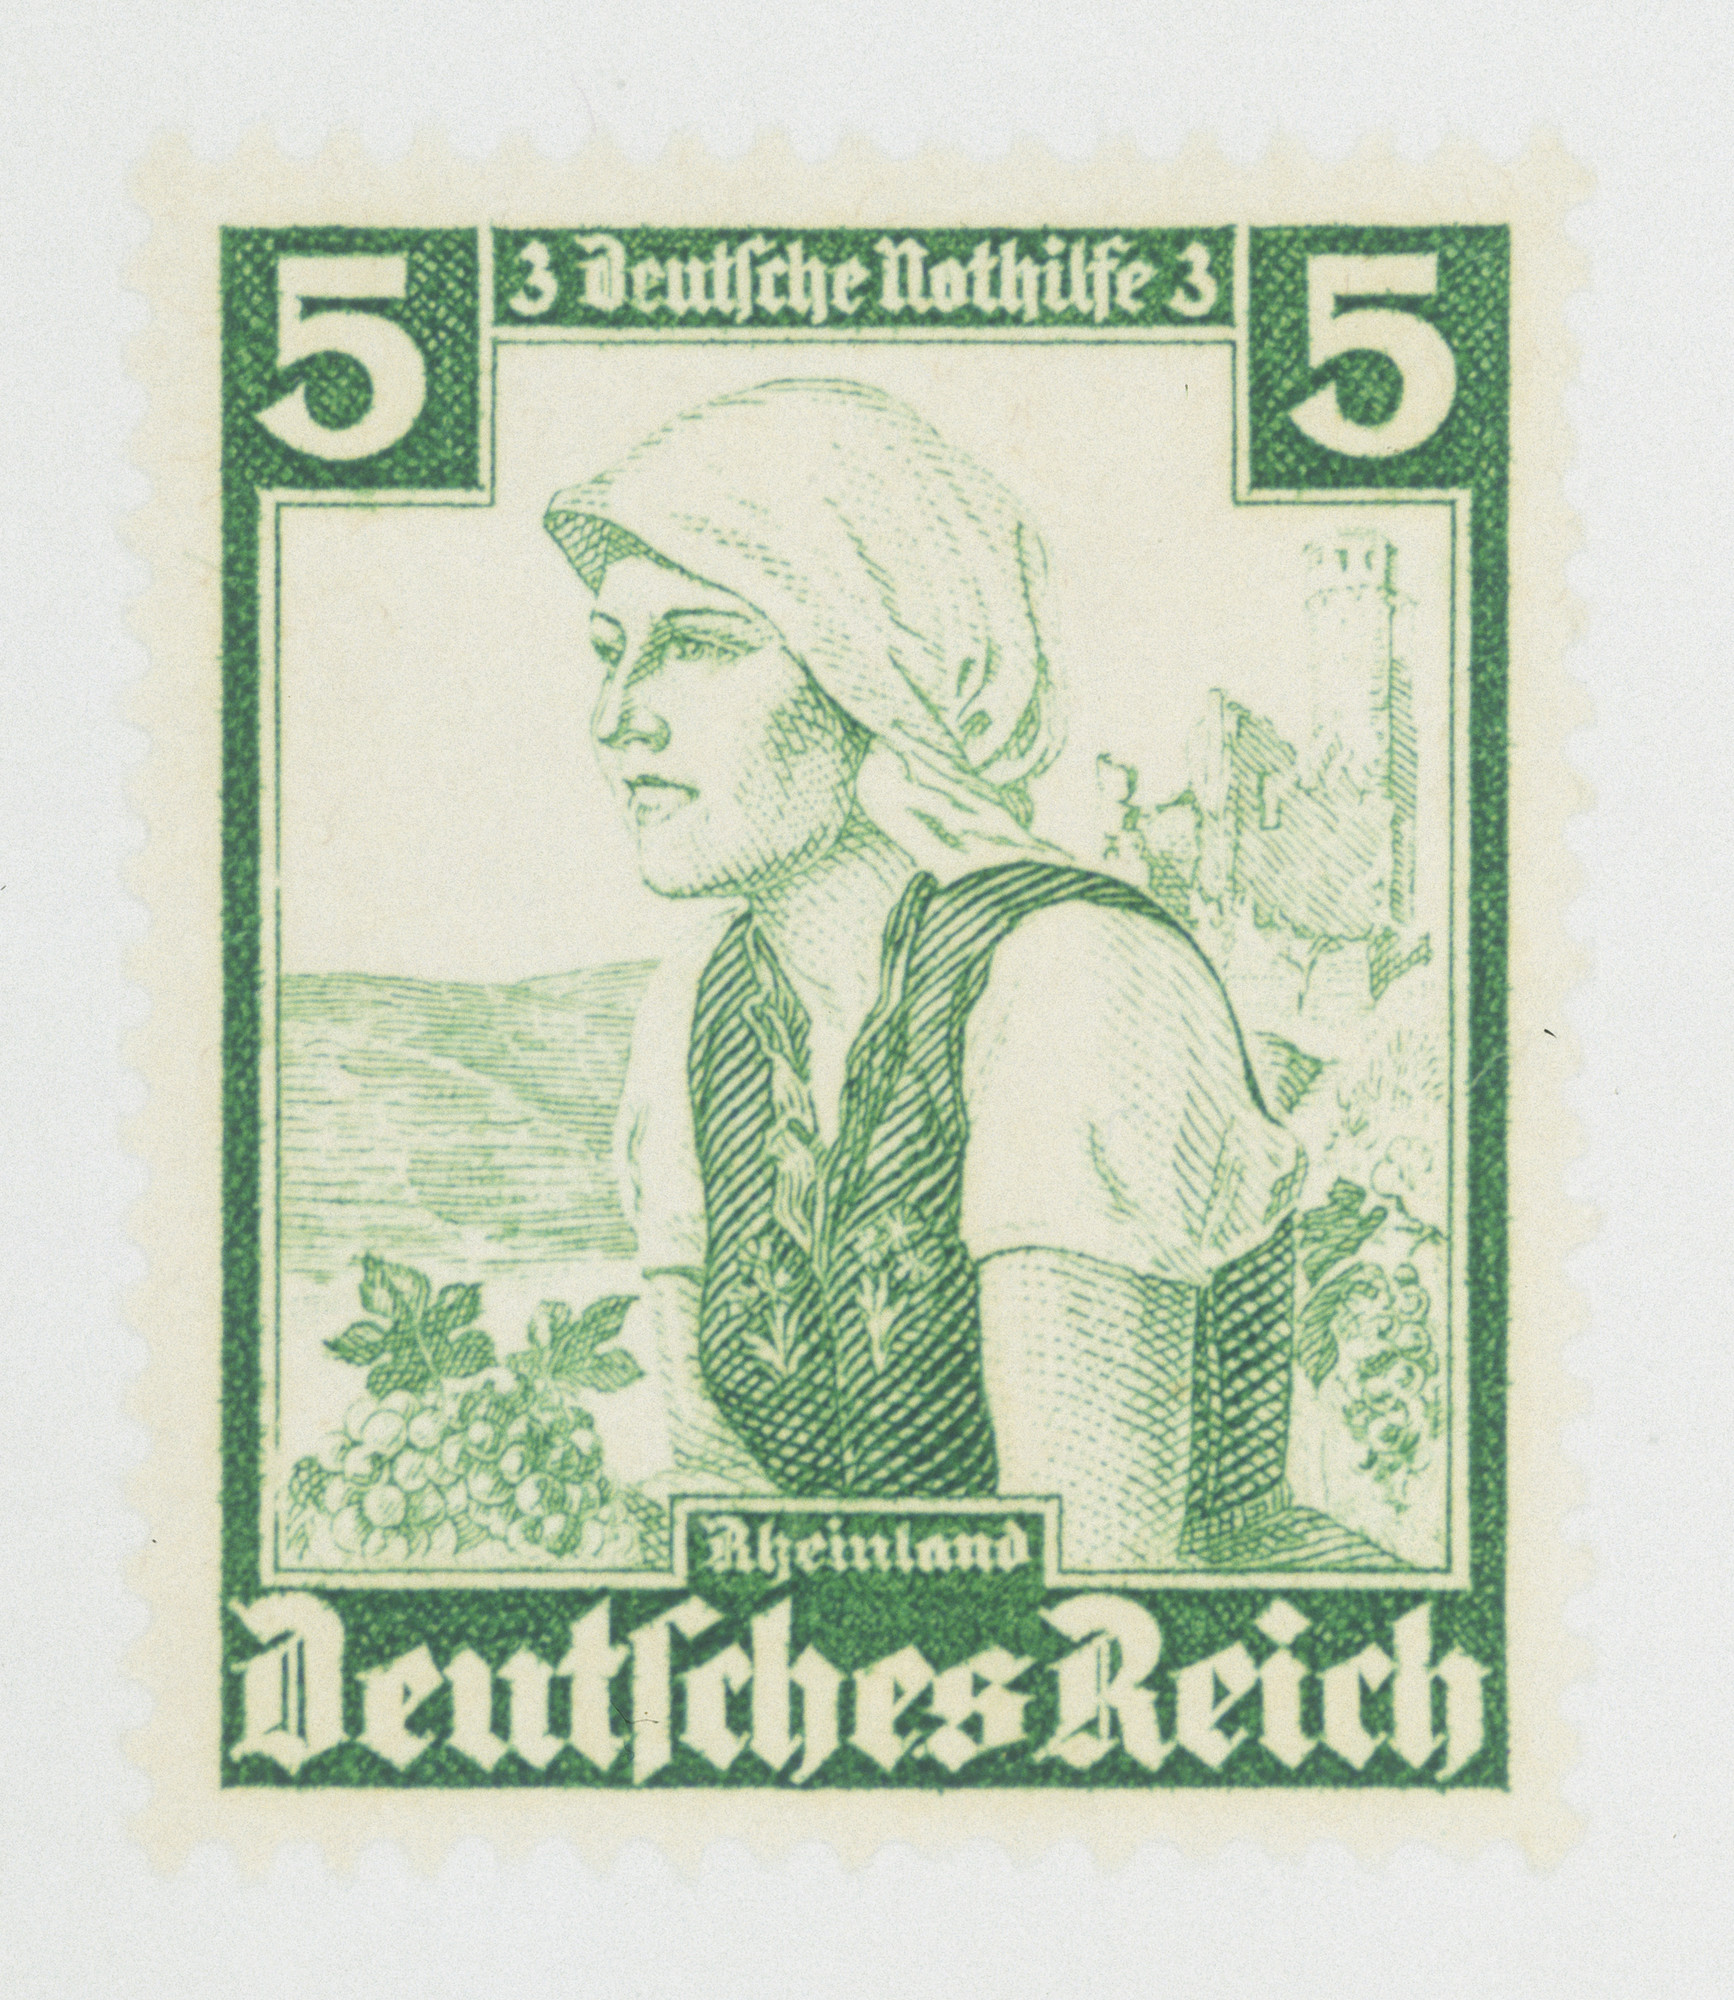 Third Reich stamp honoring peasants in the Rhineland.